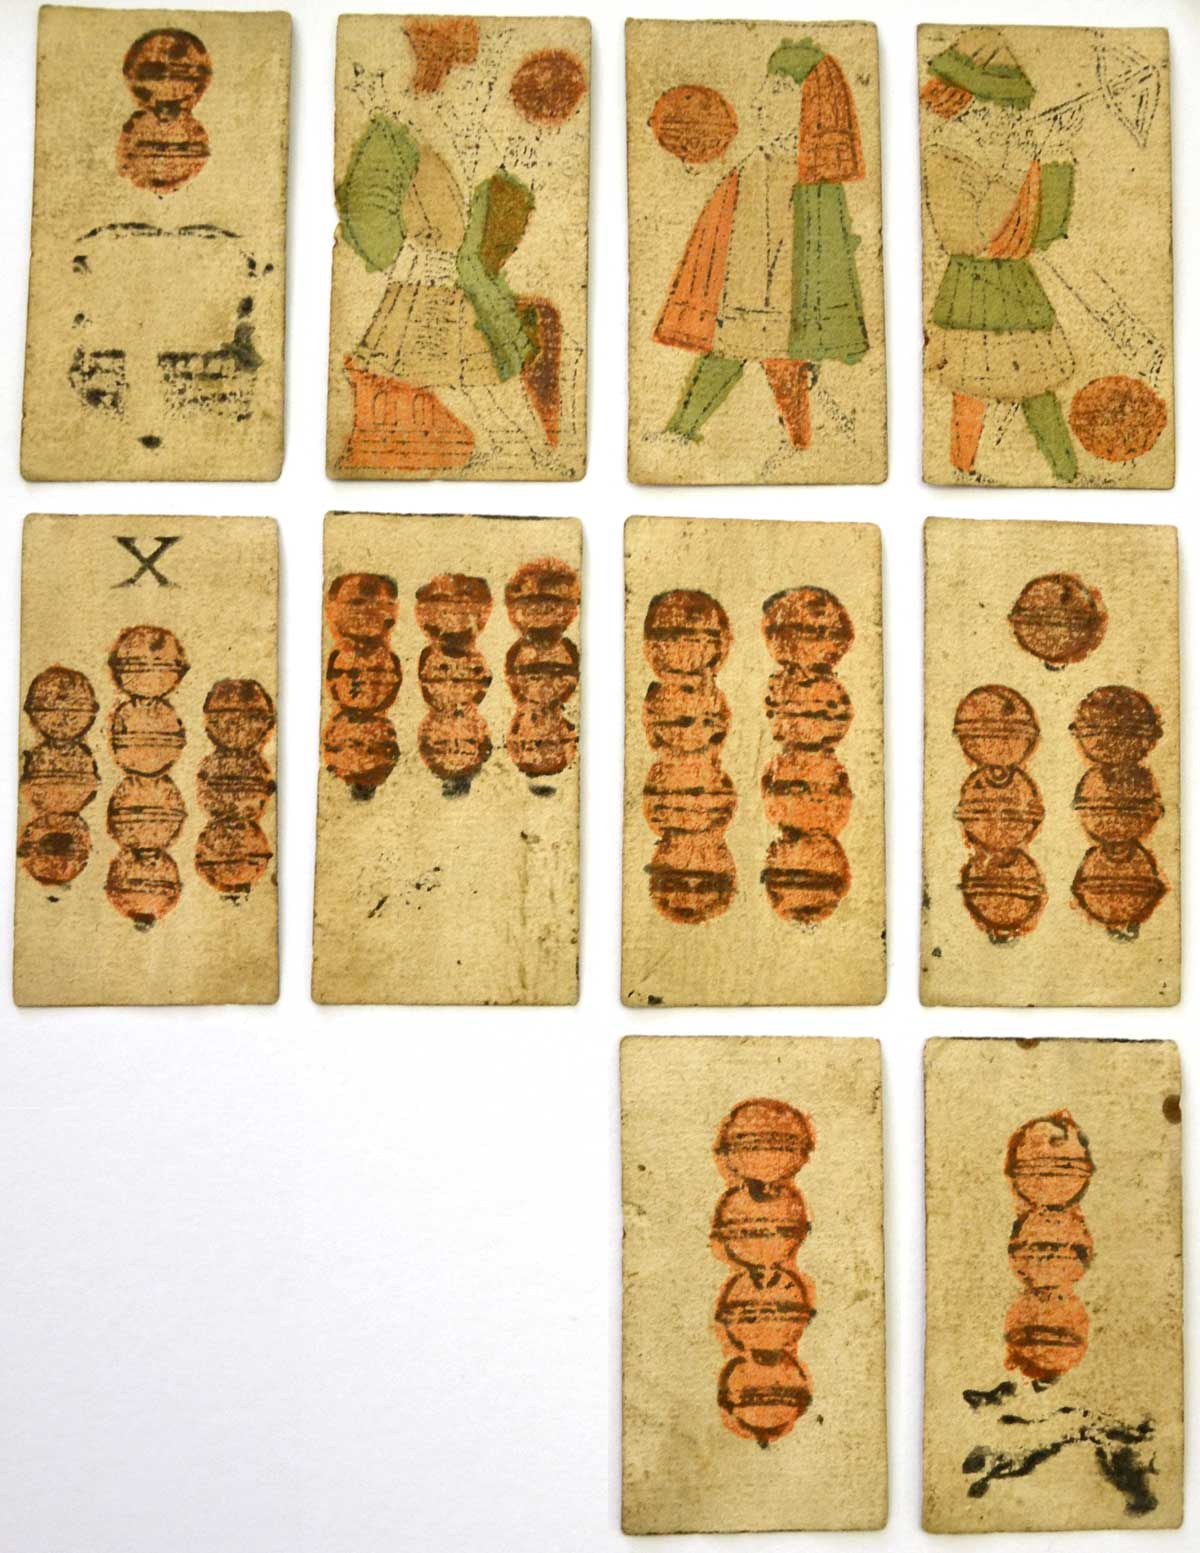 Bohemian playing cards of the German type manufactured by Georg Kapfler and dated 1611